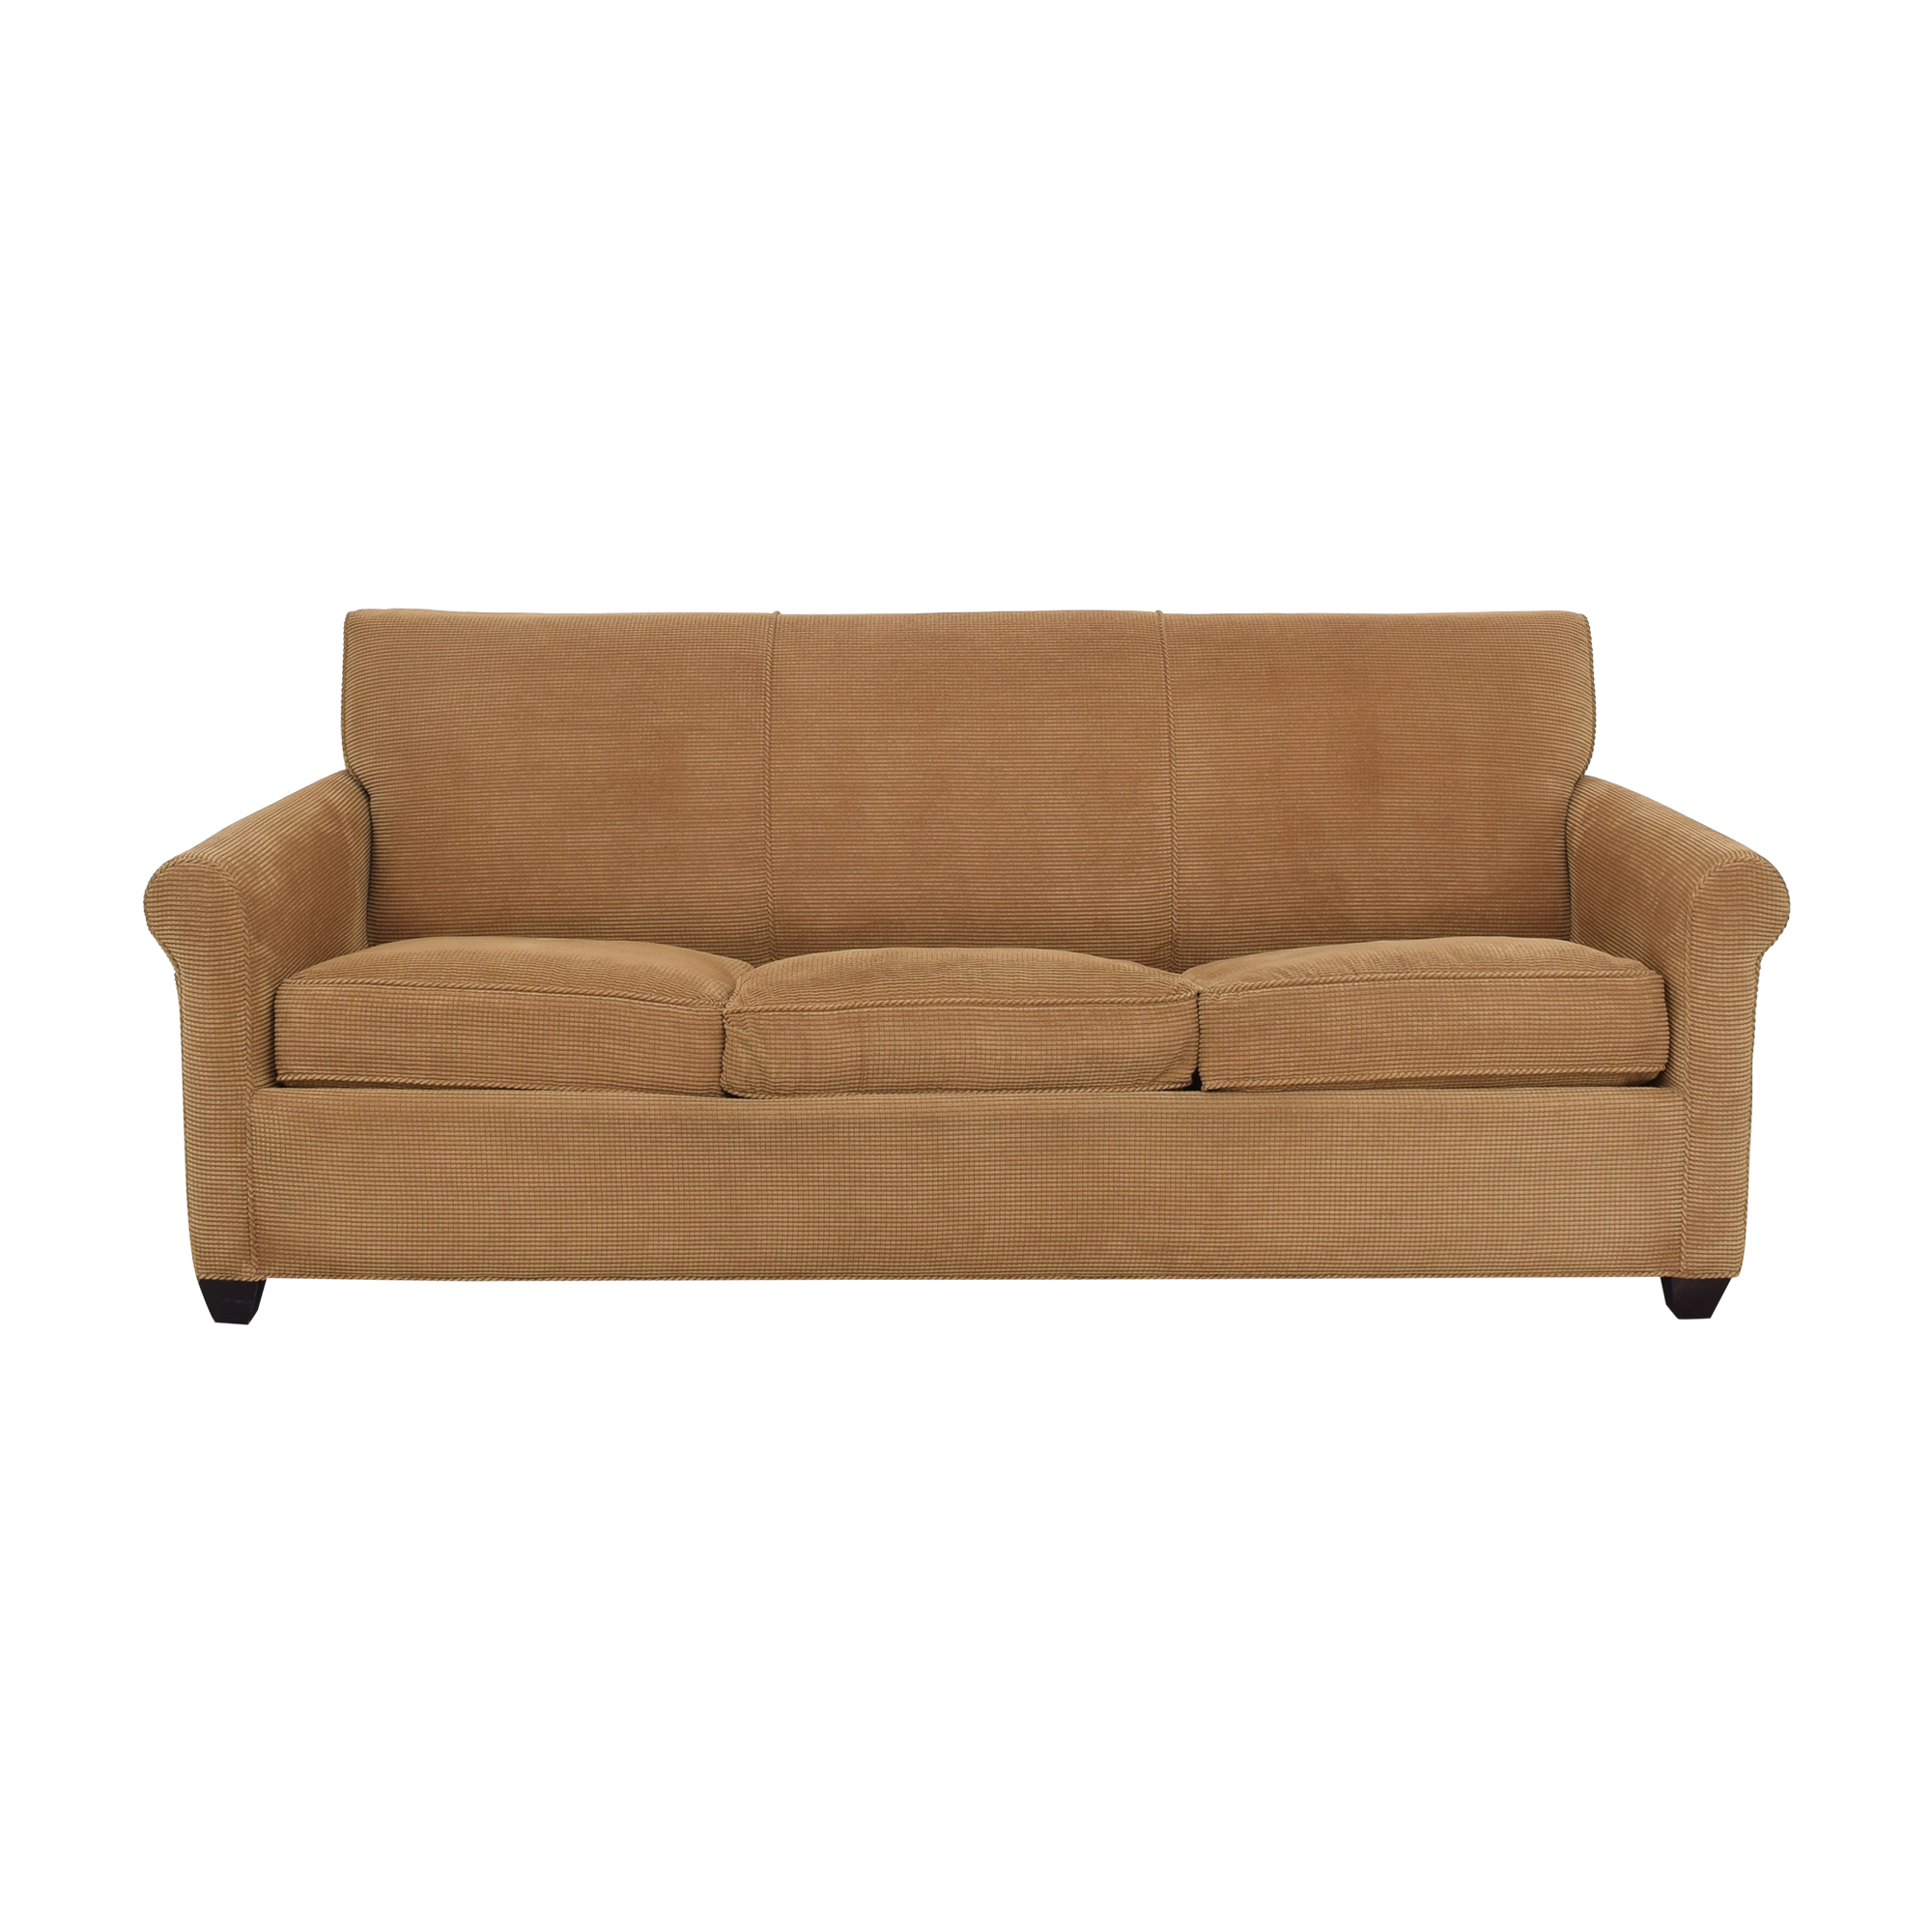 buy Crate & Barrel Rolled Arm Queen Sleeper Sofa Crate & Barrel